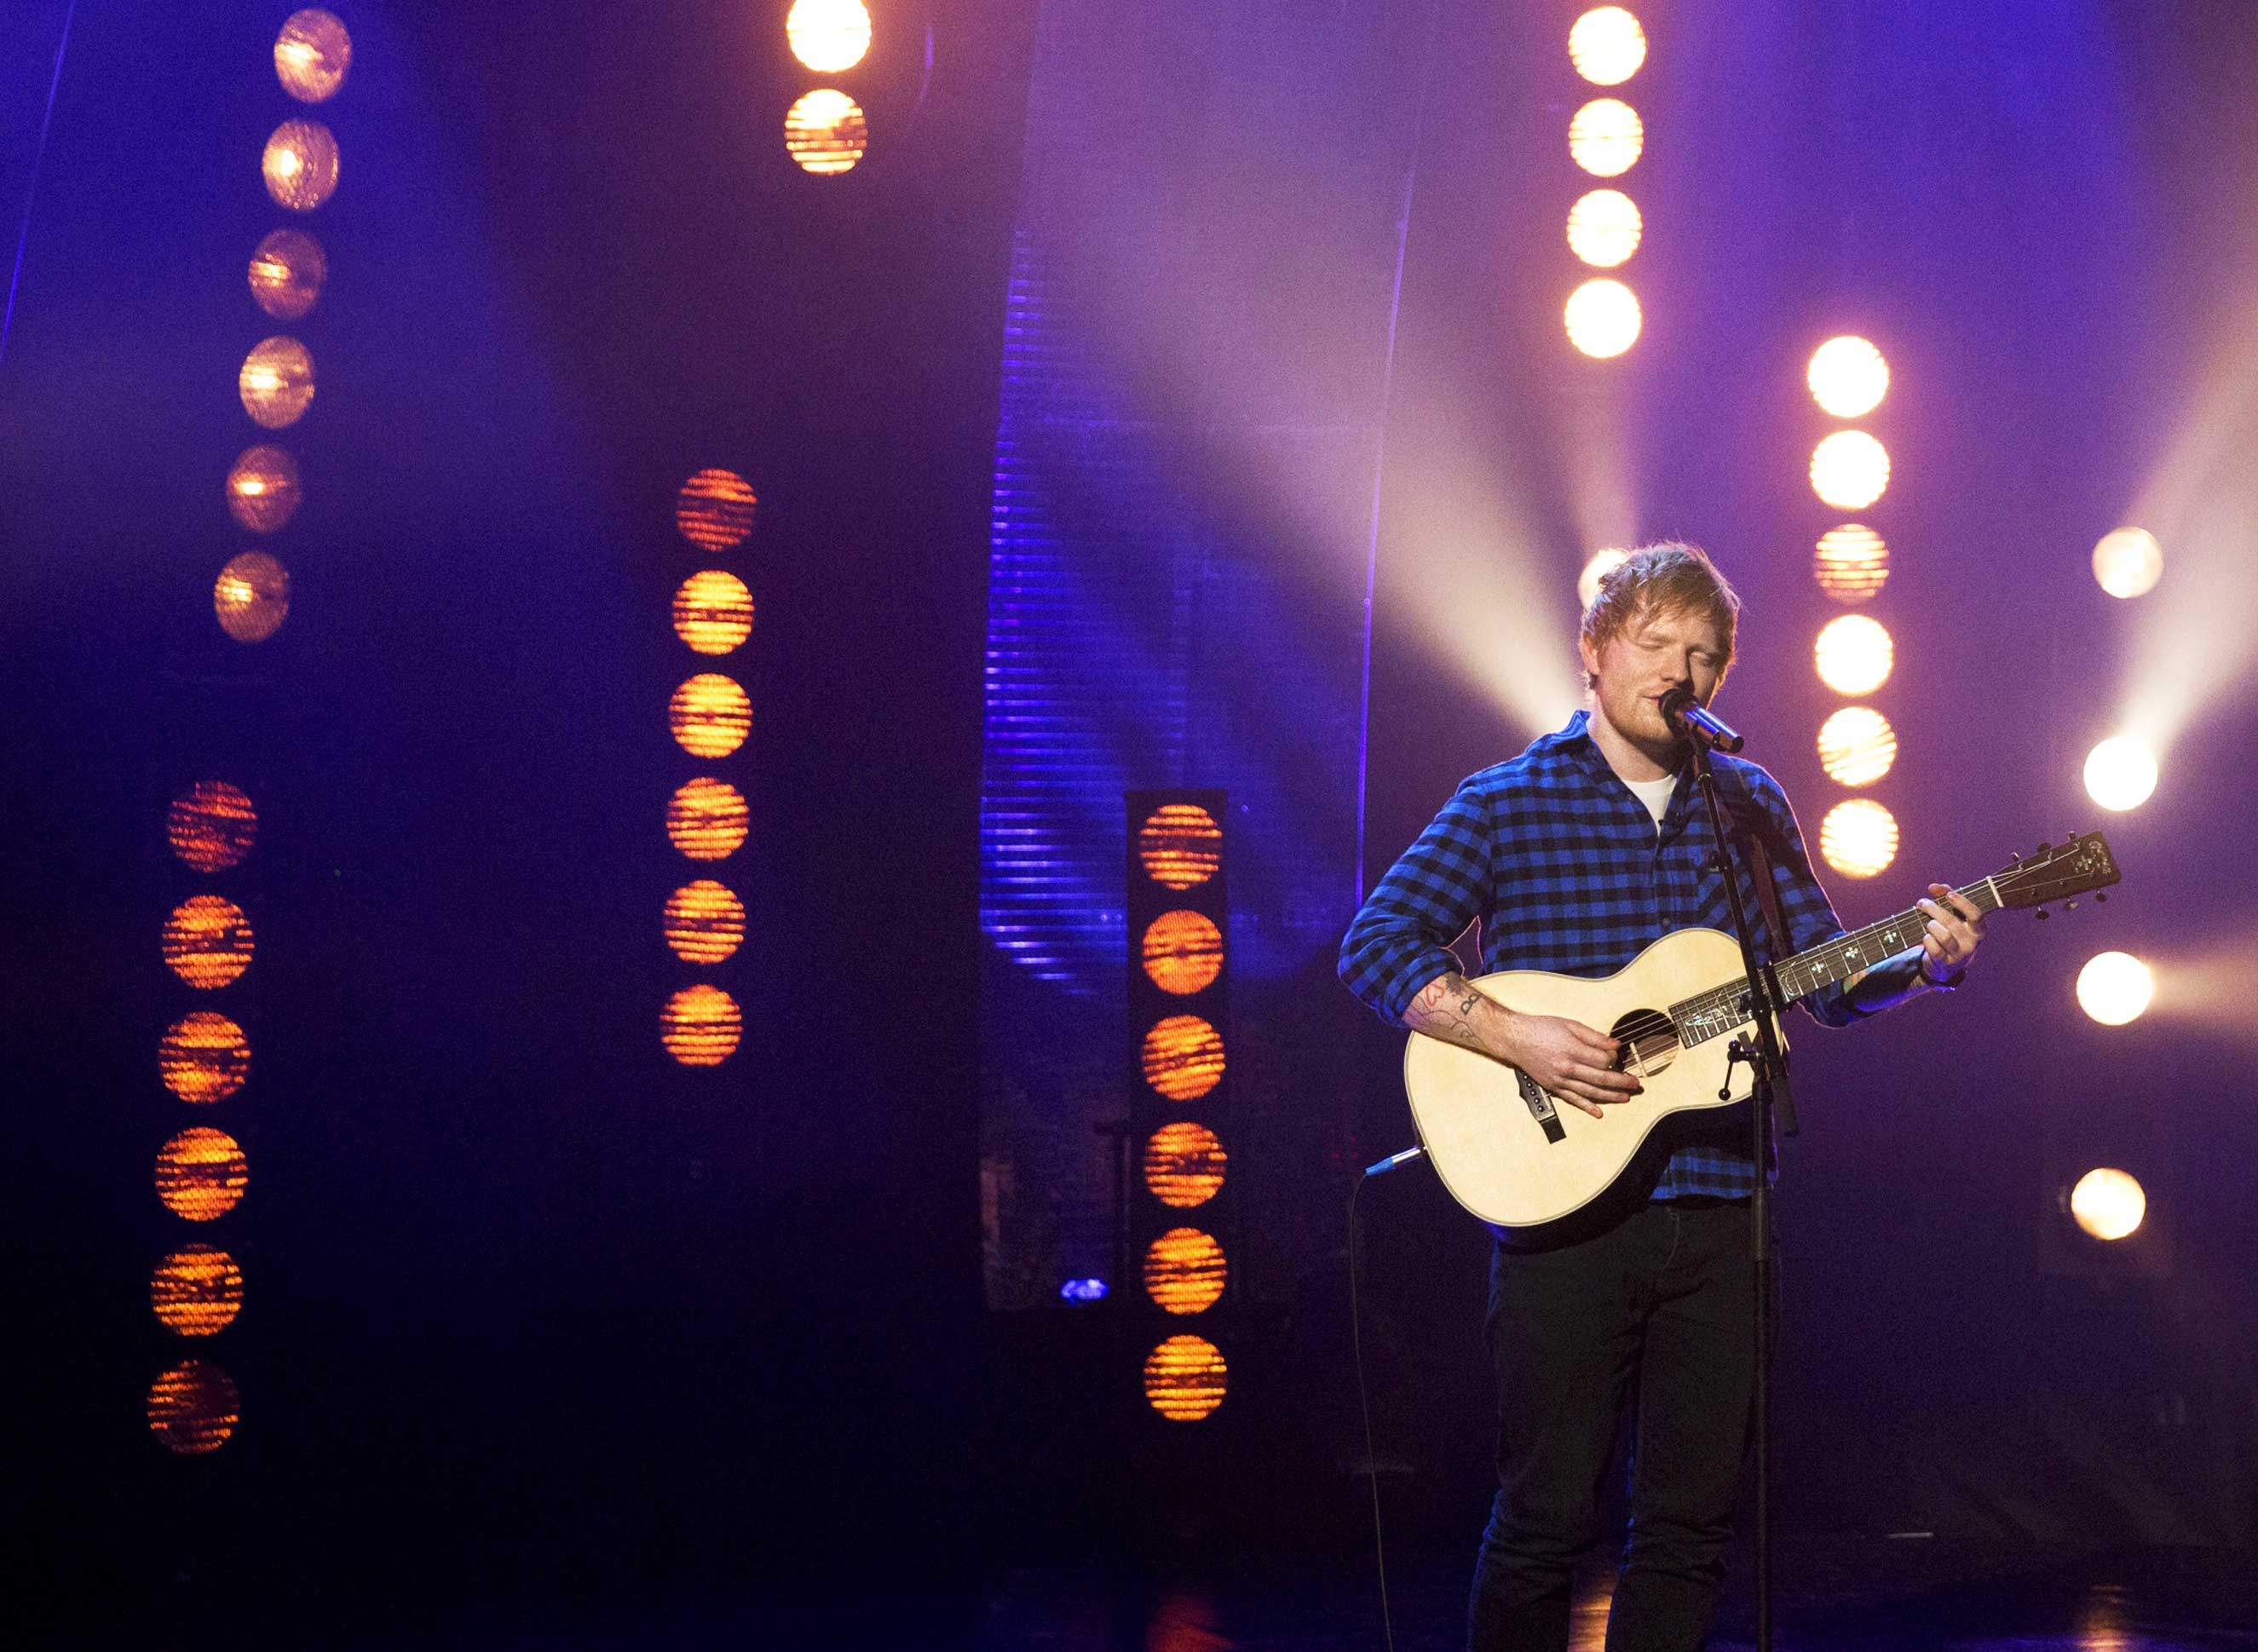 Ed Sheeran performs during the filming of the Graham Norton Show at The London Studios, South London on Thursday January 19, 2017.